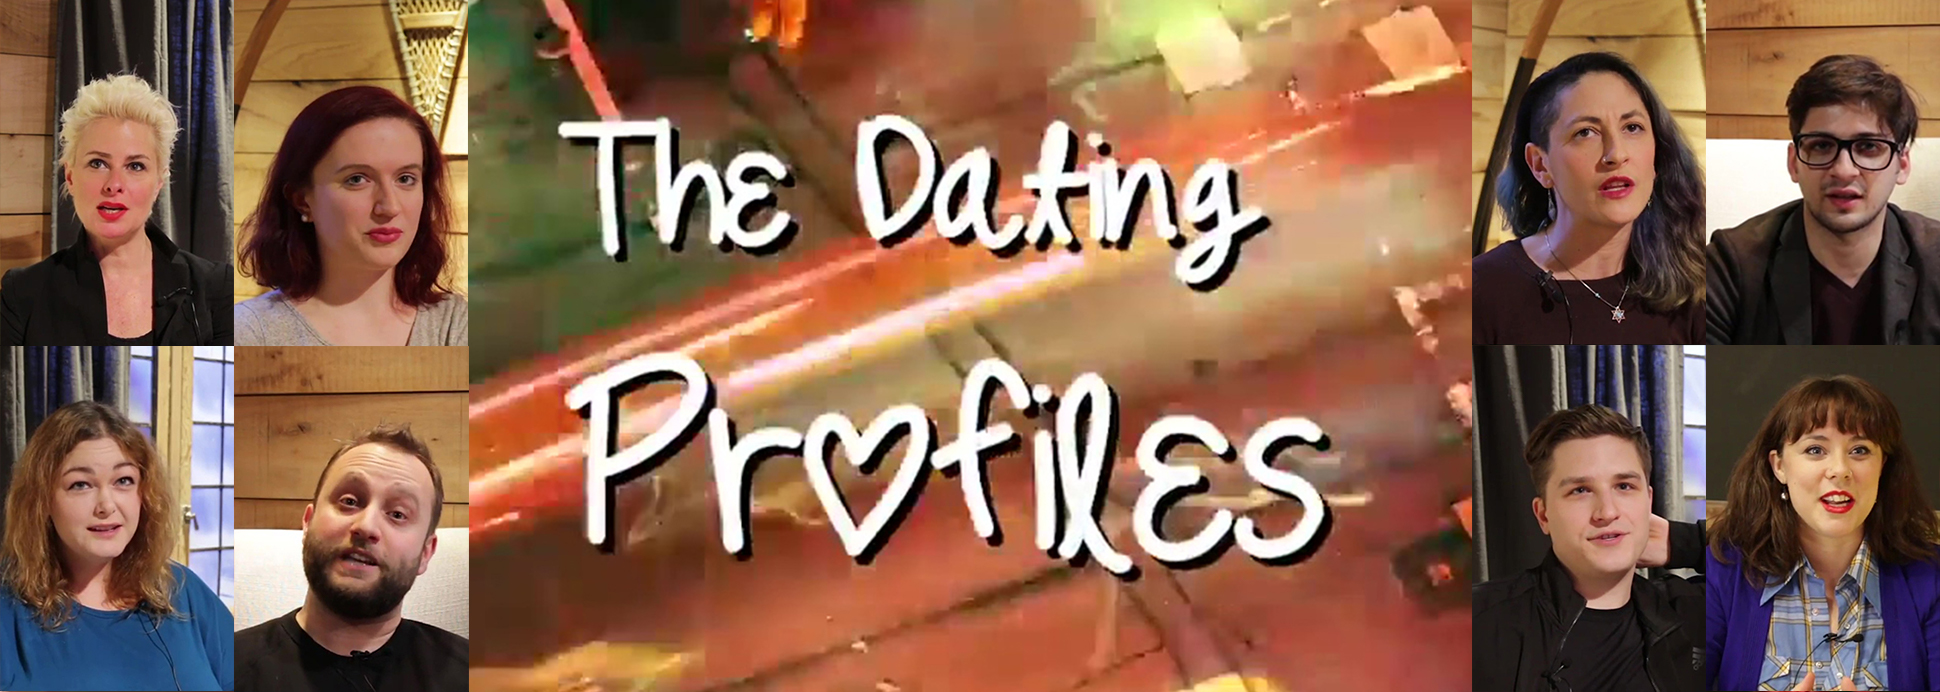 The Dating Profiles